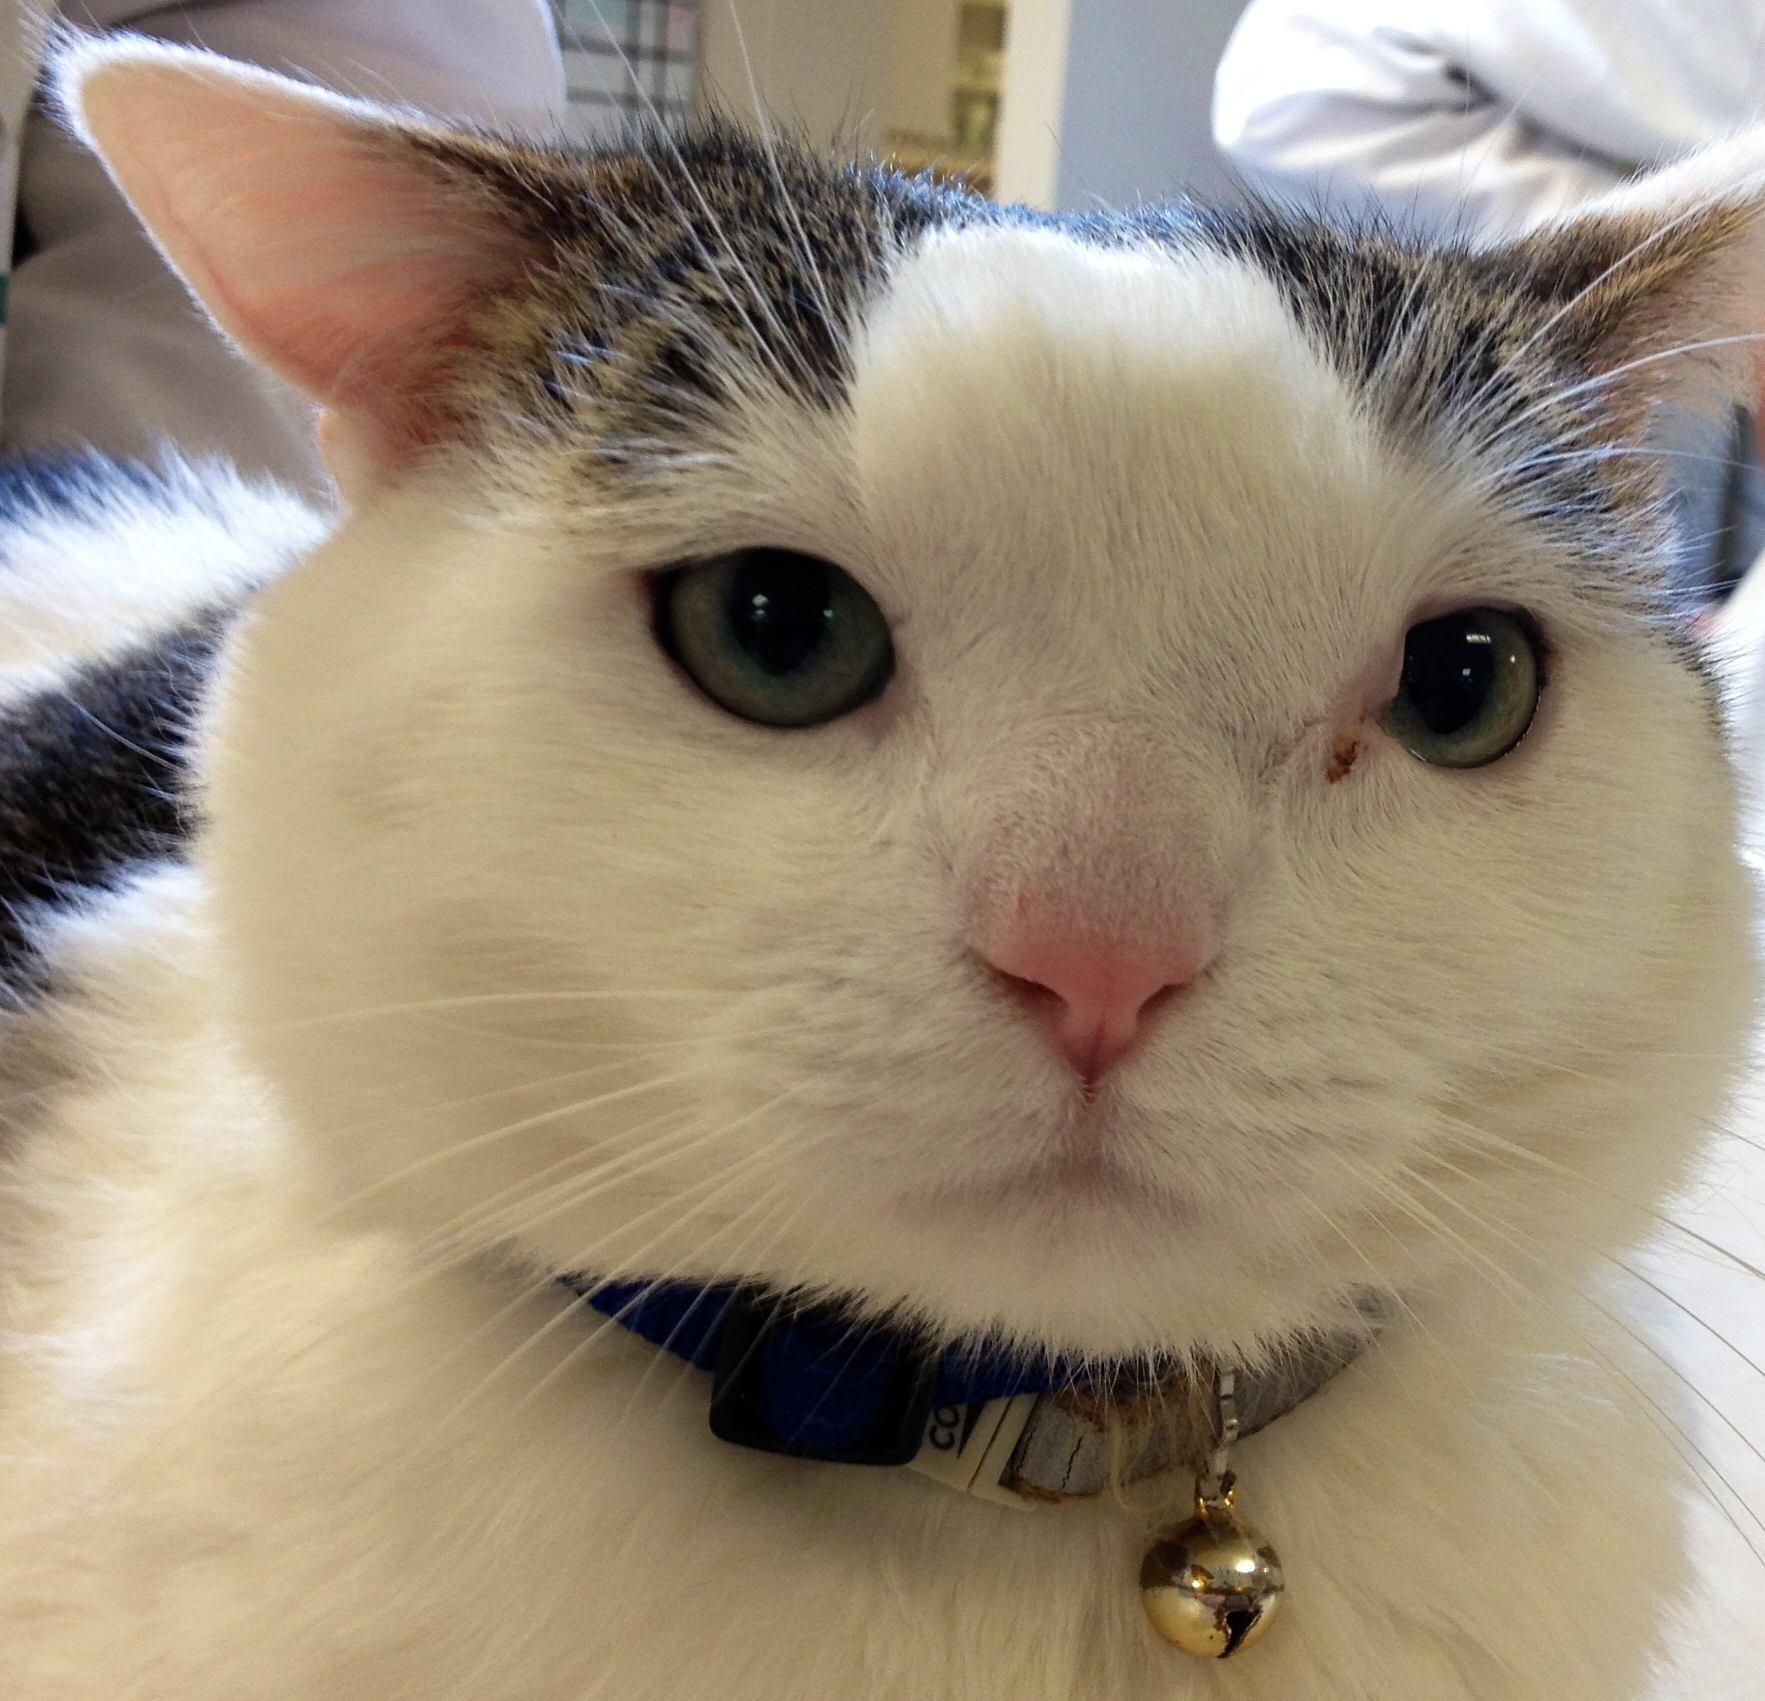 Most cats achieve complete remission while